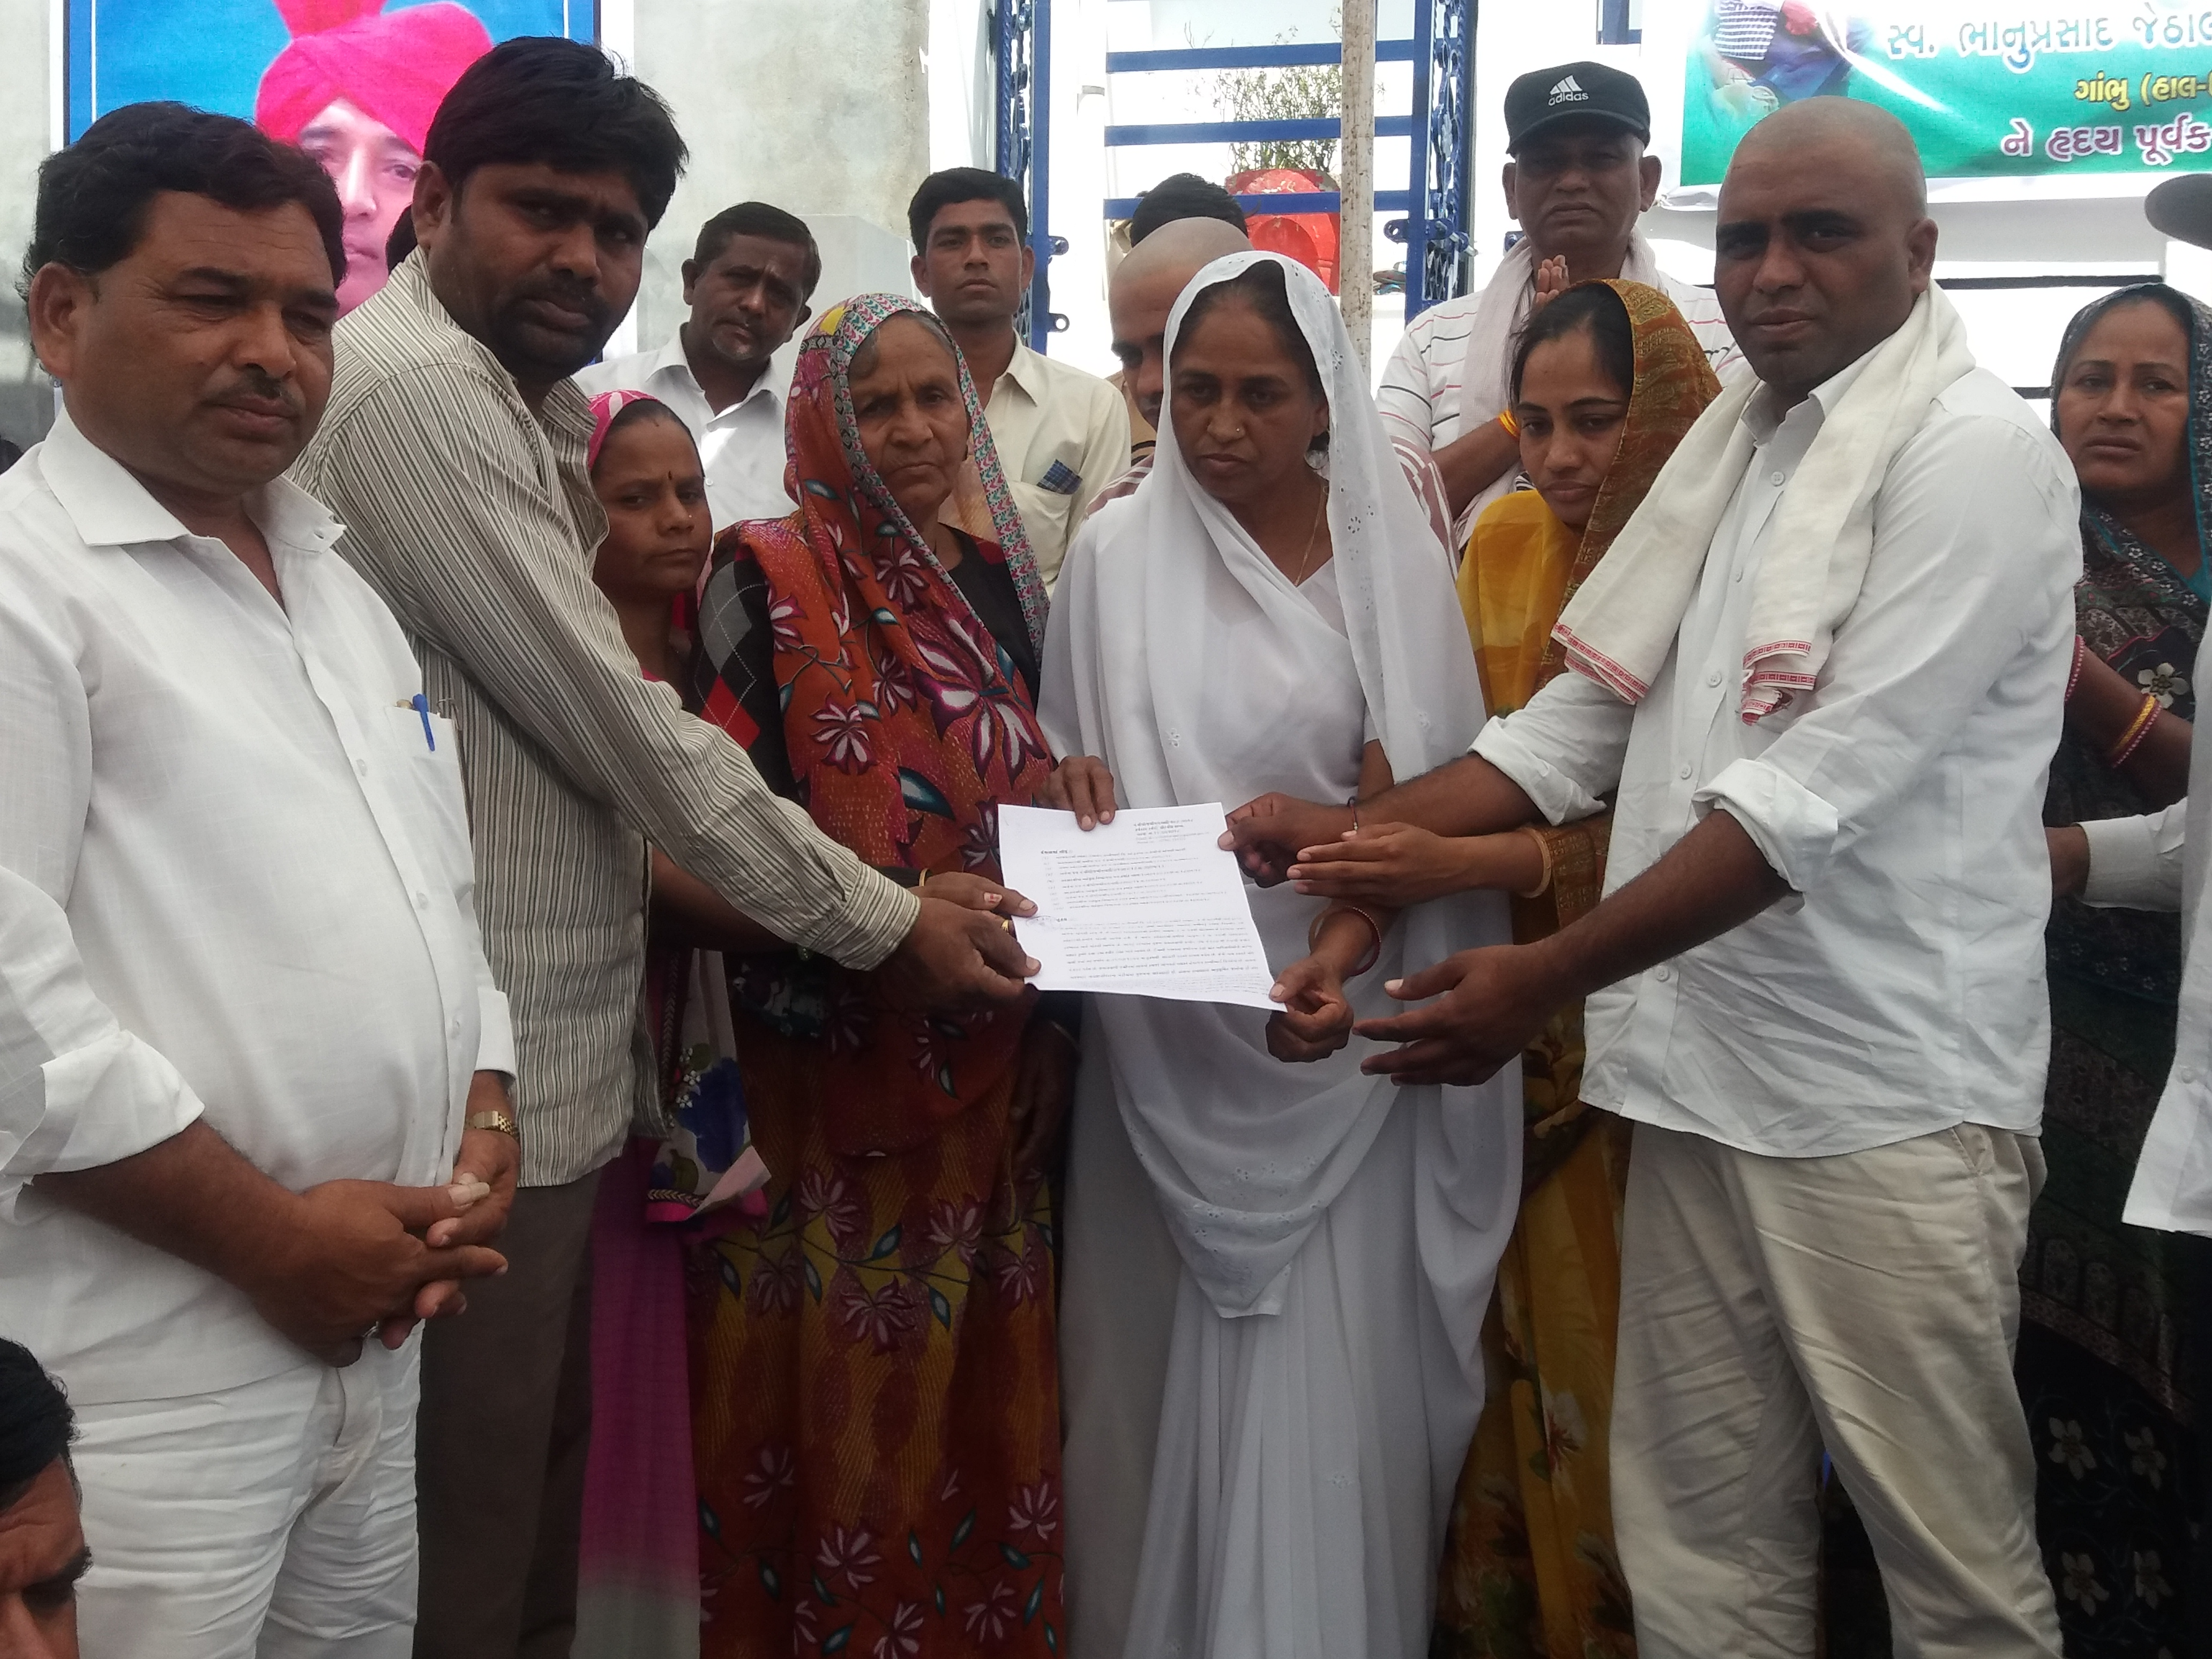 Government officials and Bhanubhai Vankar's widow hand over the land re-grant papers to Hemaben Vankar and Ramabhai Chamar at a condolence meet on February 20.